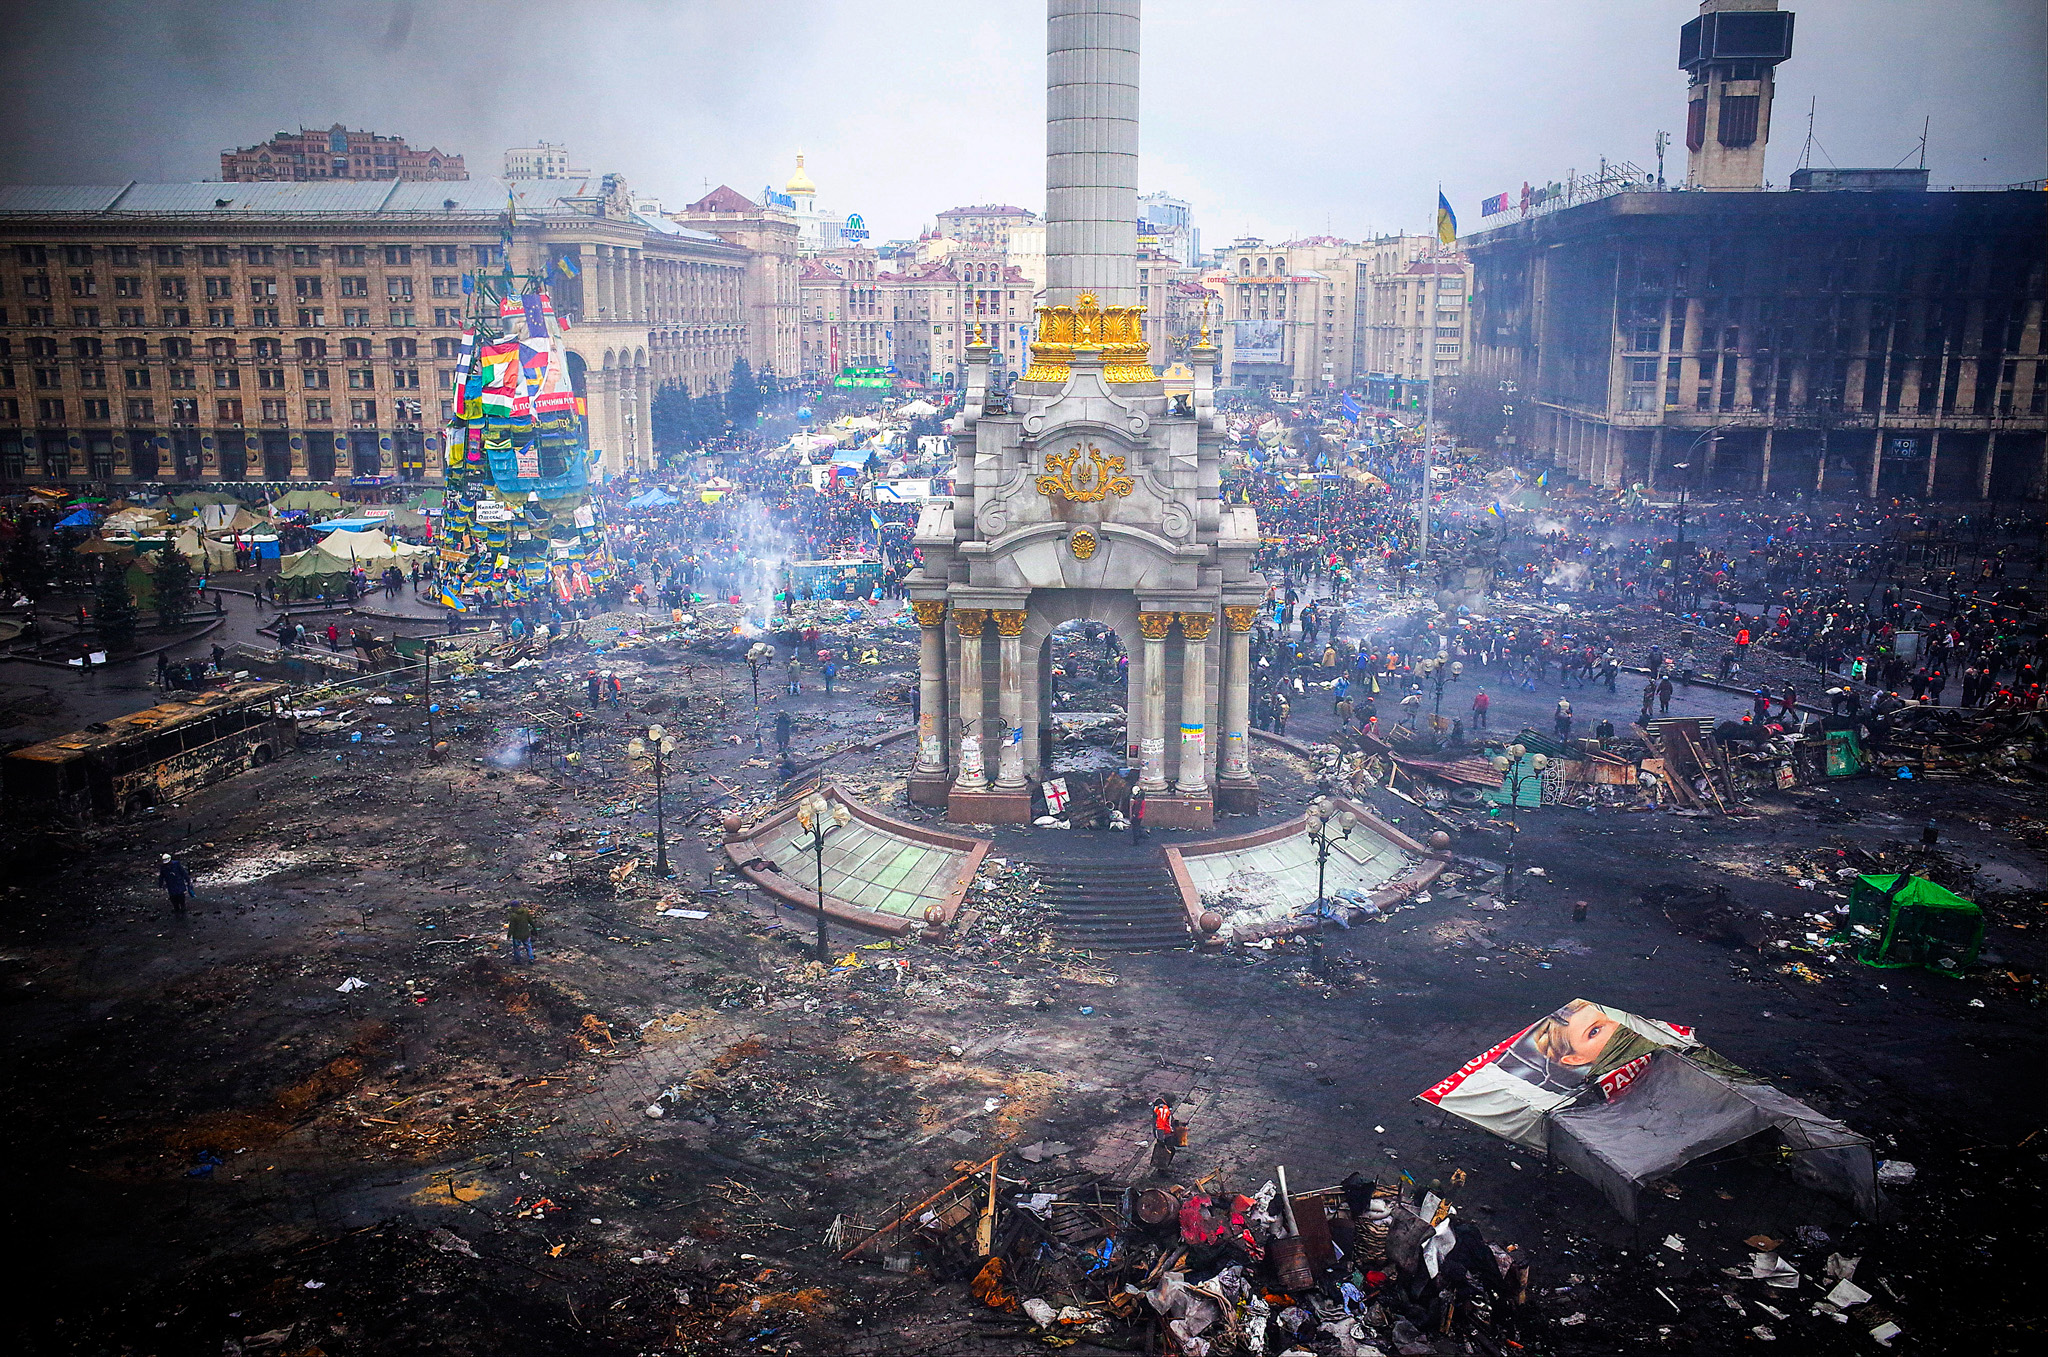 General Economy As Escalating Unrest Tumbles Currency And Shares...Protestors inspect damage caused by recent anti-government protests on Independence Square following recent clashes in Kiev, Ukraine, on Thursday, Feb. 20, 2014. Violence is escalating in the country of 45 million as the Russian-backed leader's security service conducts a nationwide anti-terrorism operation to end the three-month uprising. Photographer: Vincent Mundy/Bloomberg